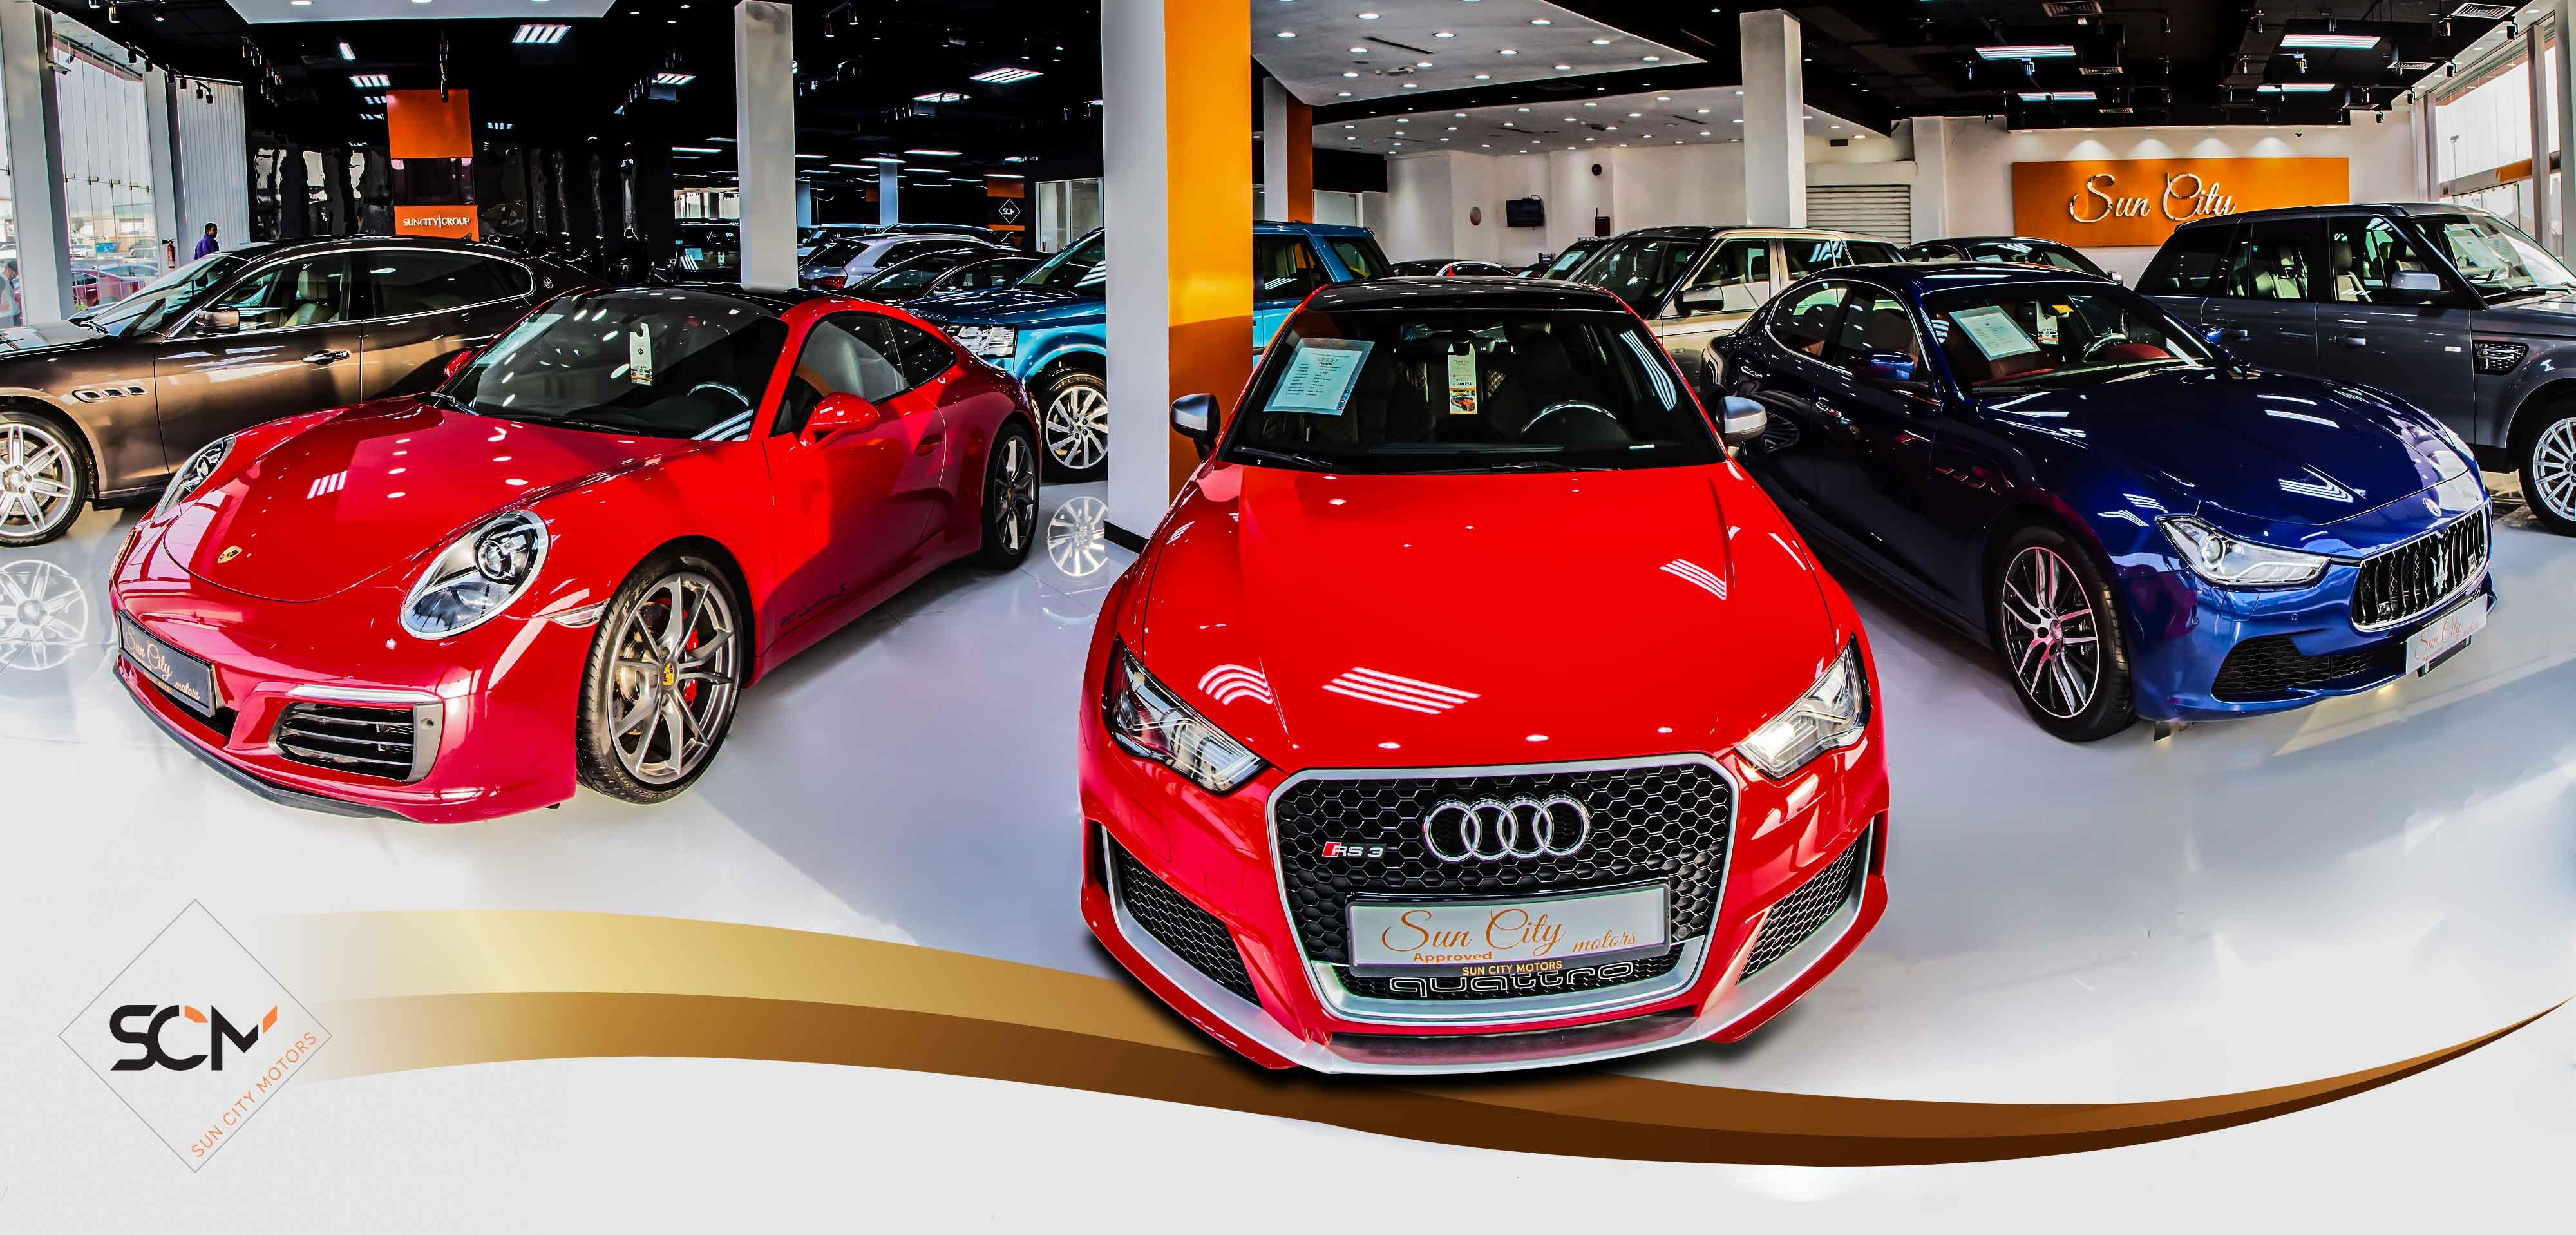 How To Register A Used Car In Dubai Criteria For Registeration